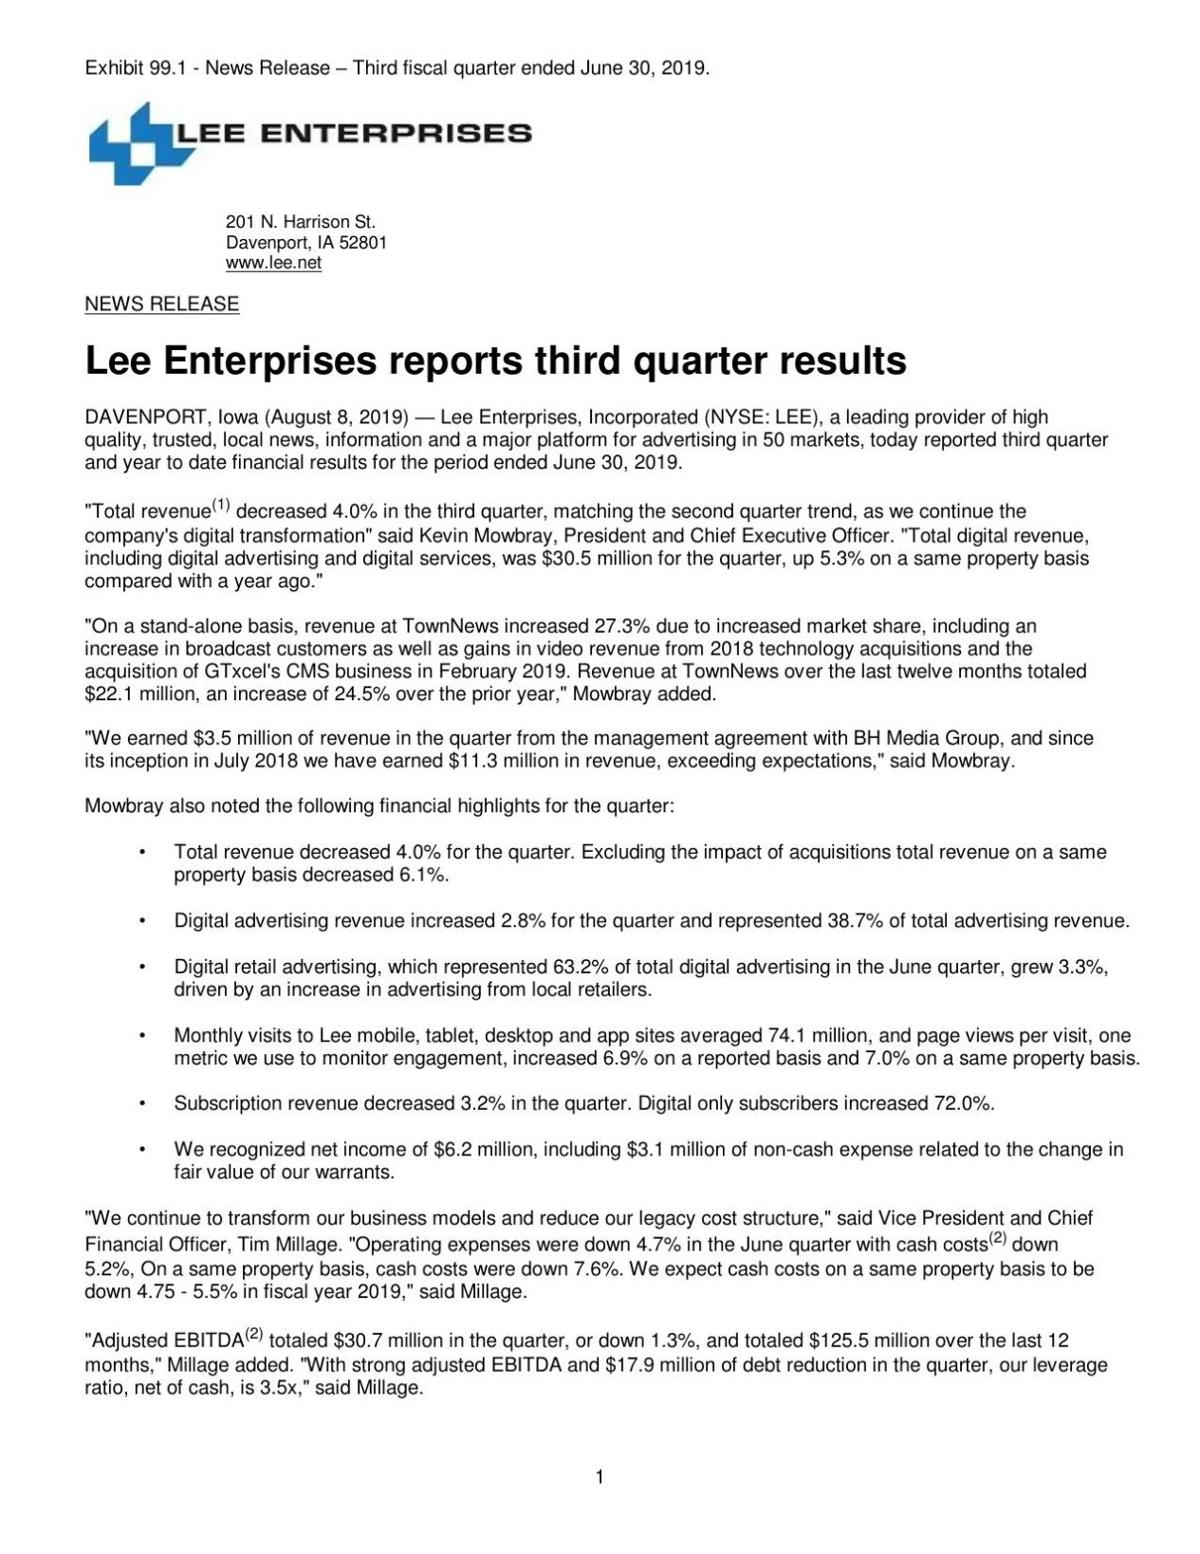 Lee Enterprises reports third quarter results